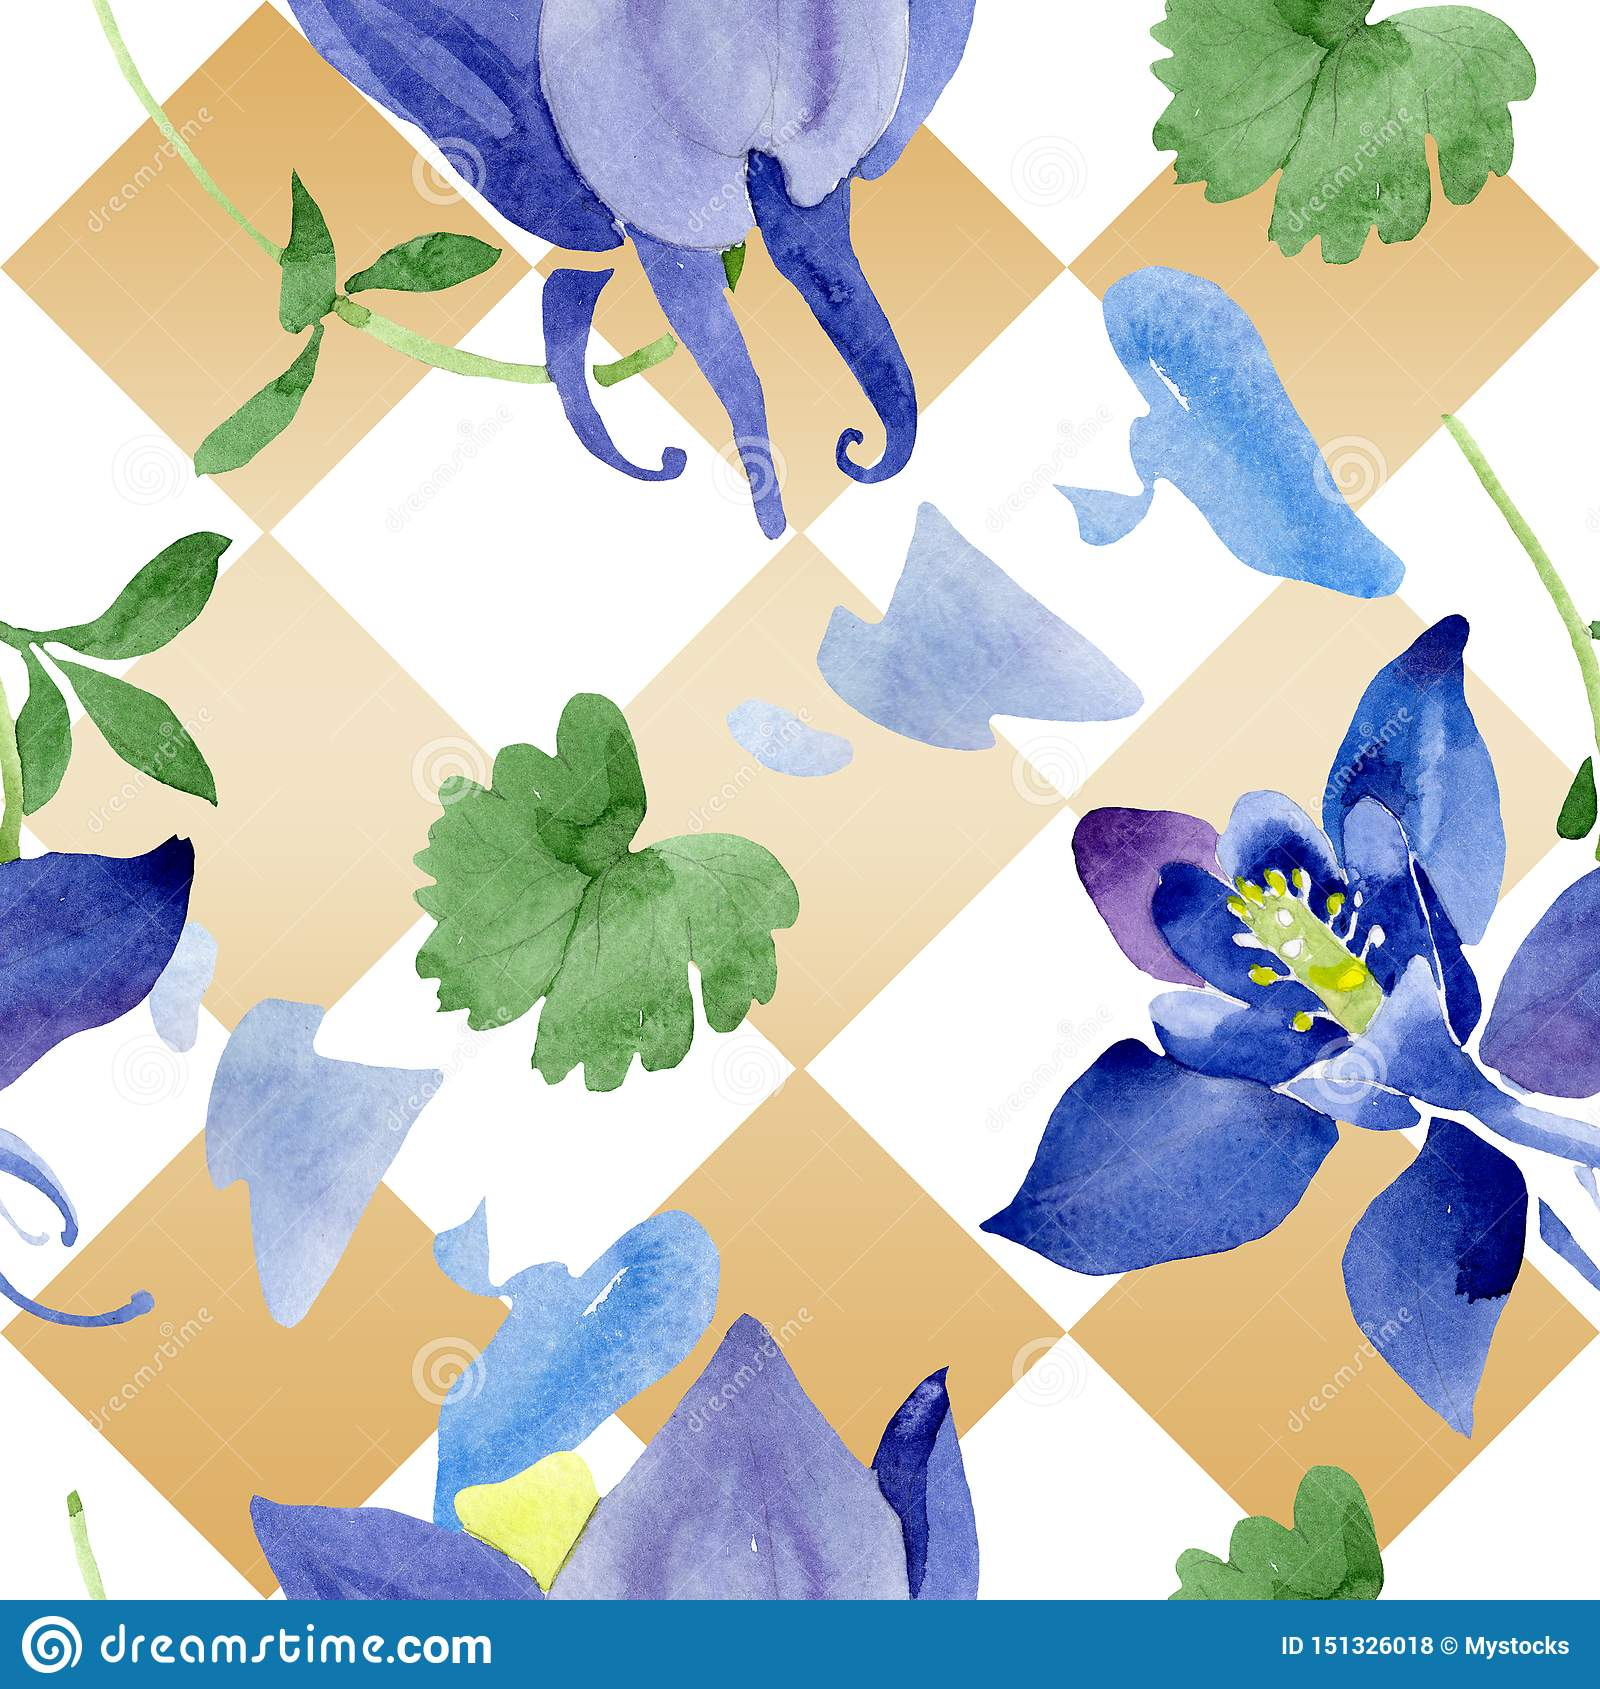 Blue aquilegia floral botanical flowers. Watercolor background illustration set. Seamless background pattern.